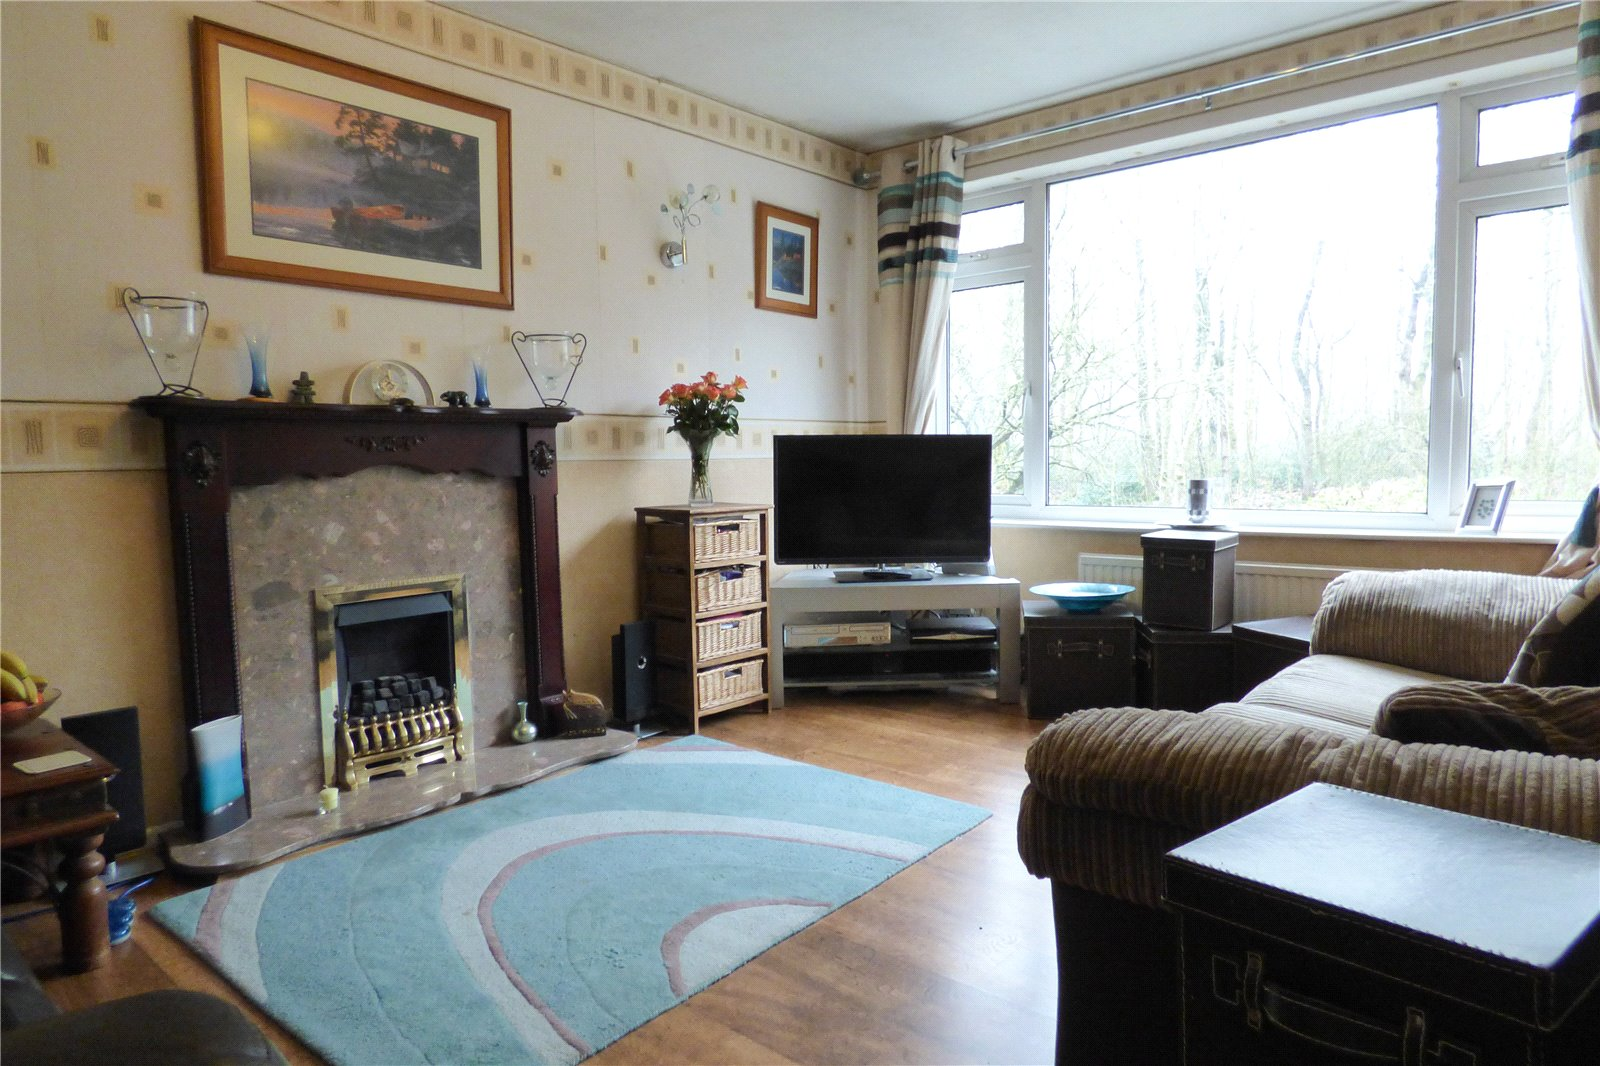 3 Bedrooms Semi Detached House for sale in Station Road, Mossley, Ashton-under-Lyne, Greater Manchester, OL5